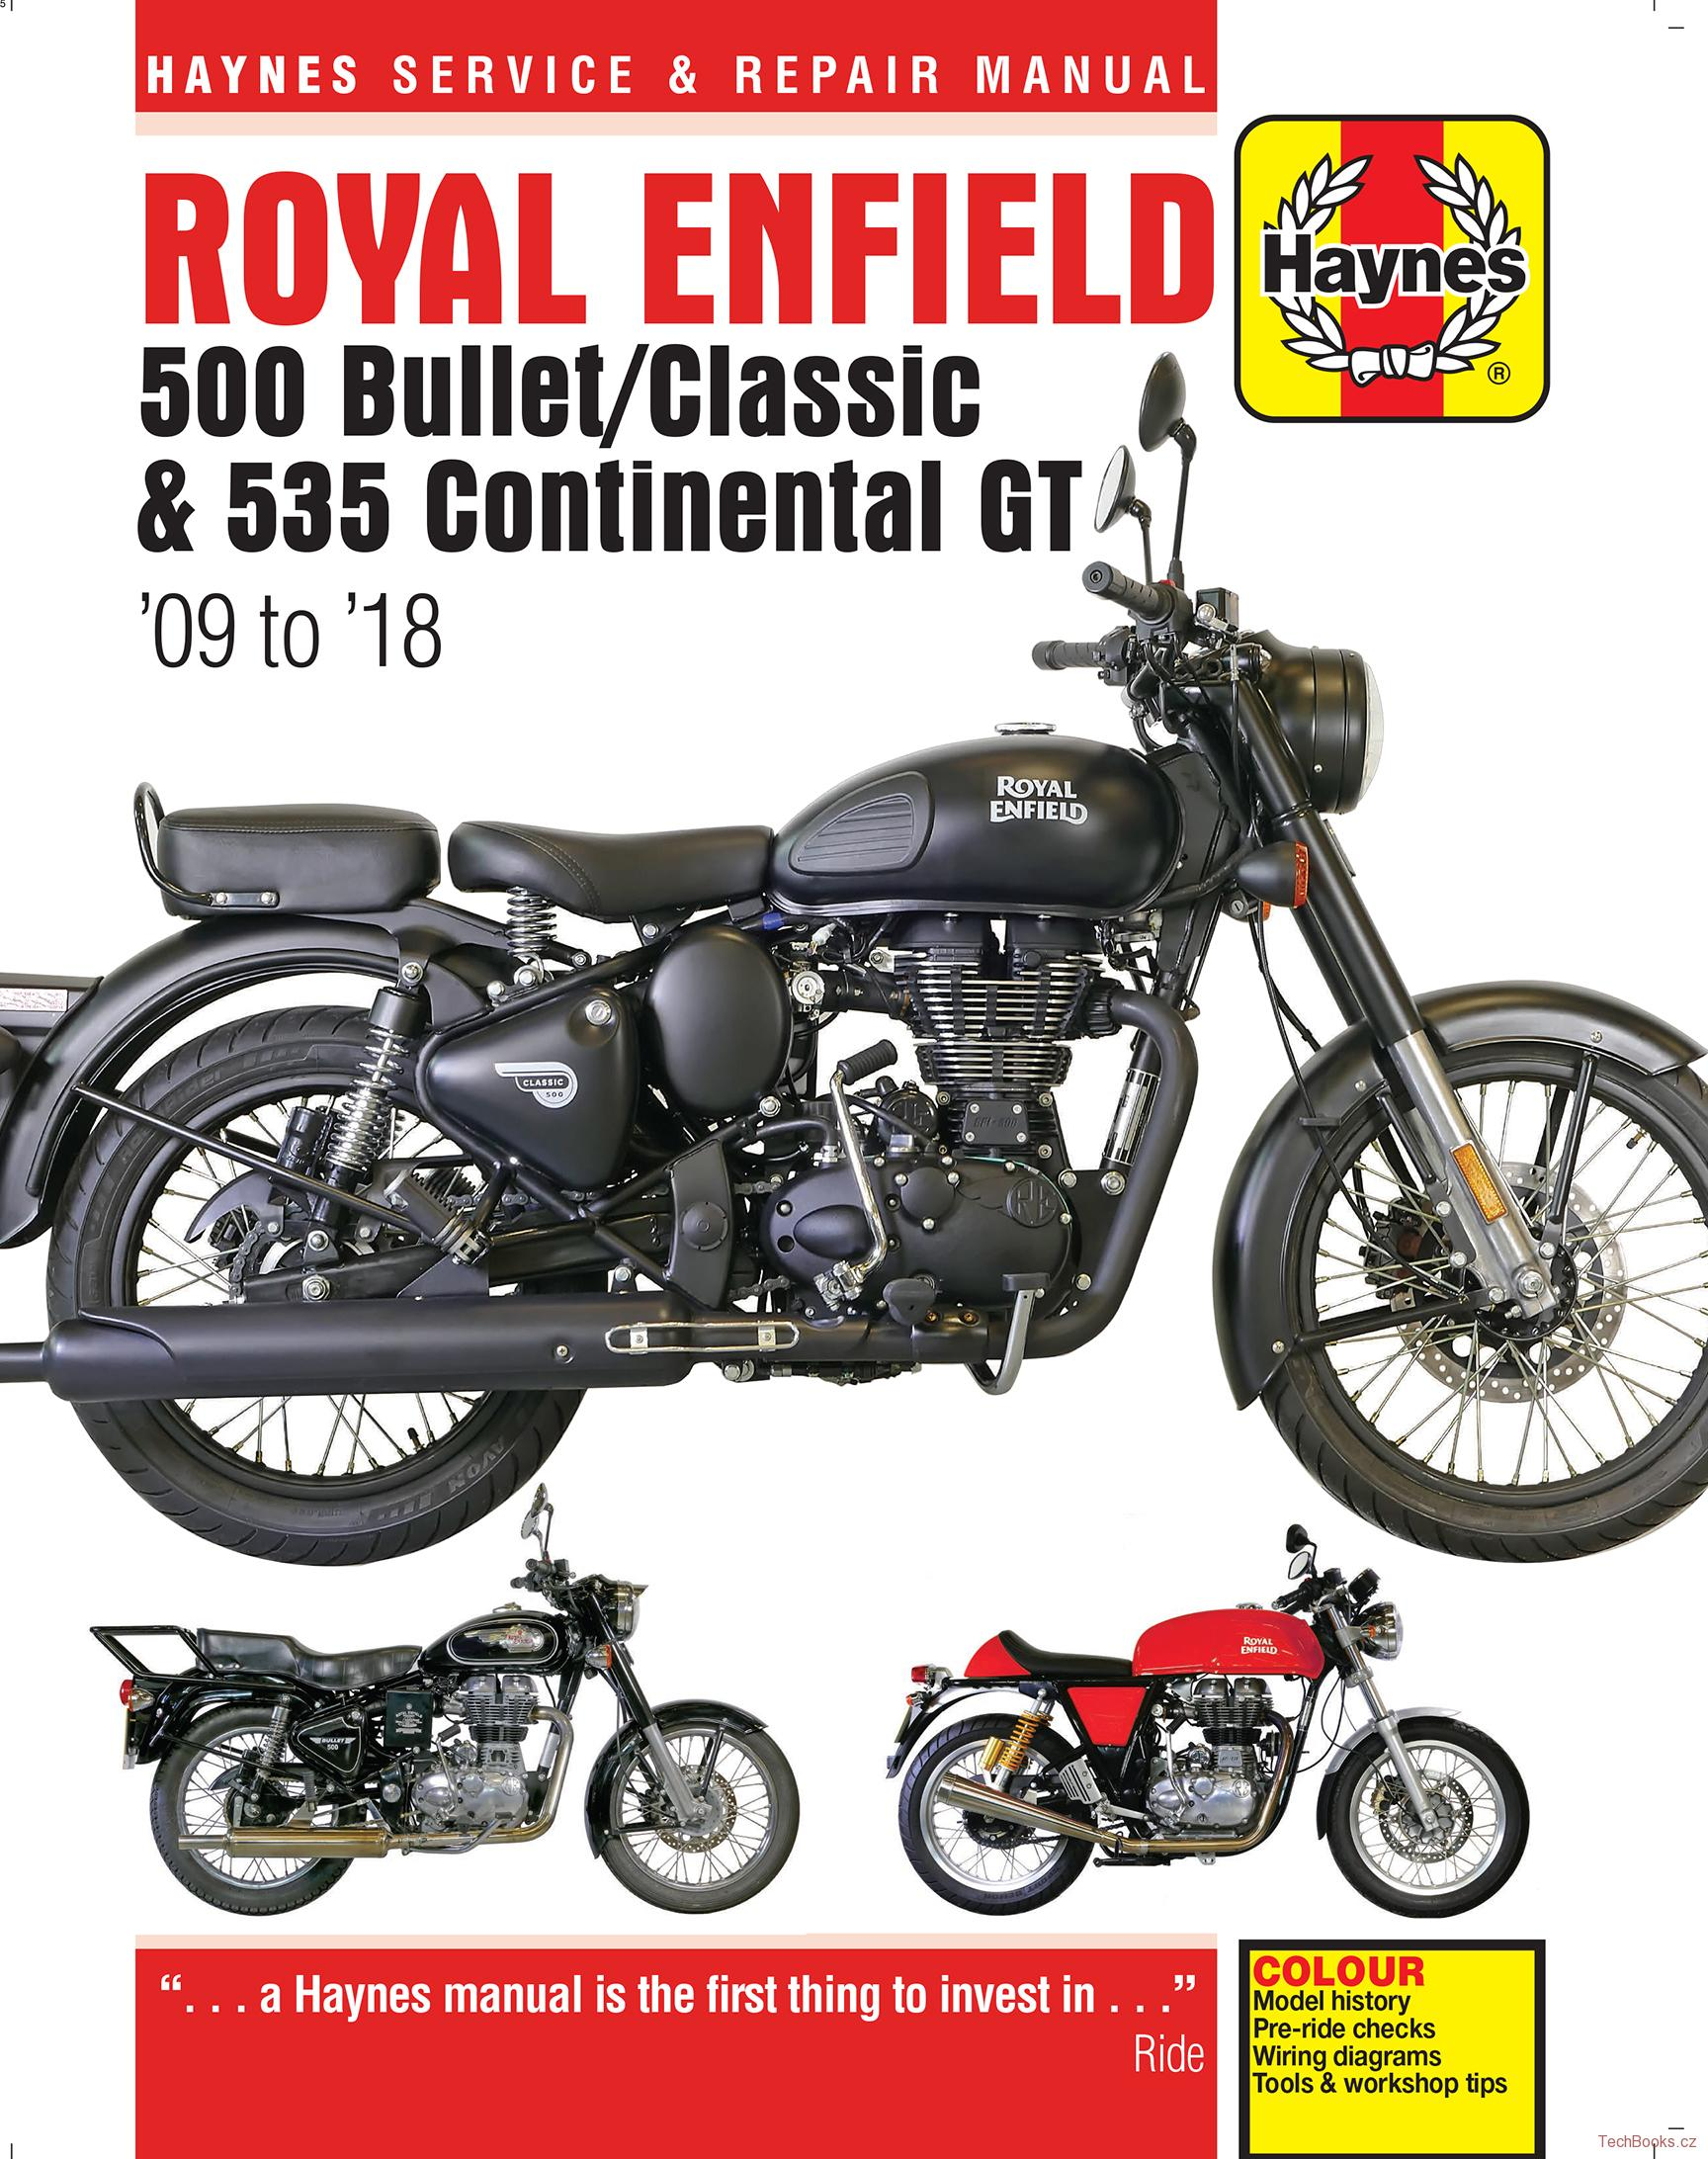 Royal Enfield 500 Bullet/Classic & 535 Continental GT (09 - 18)